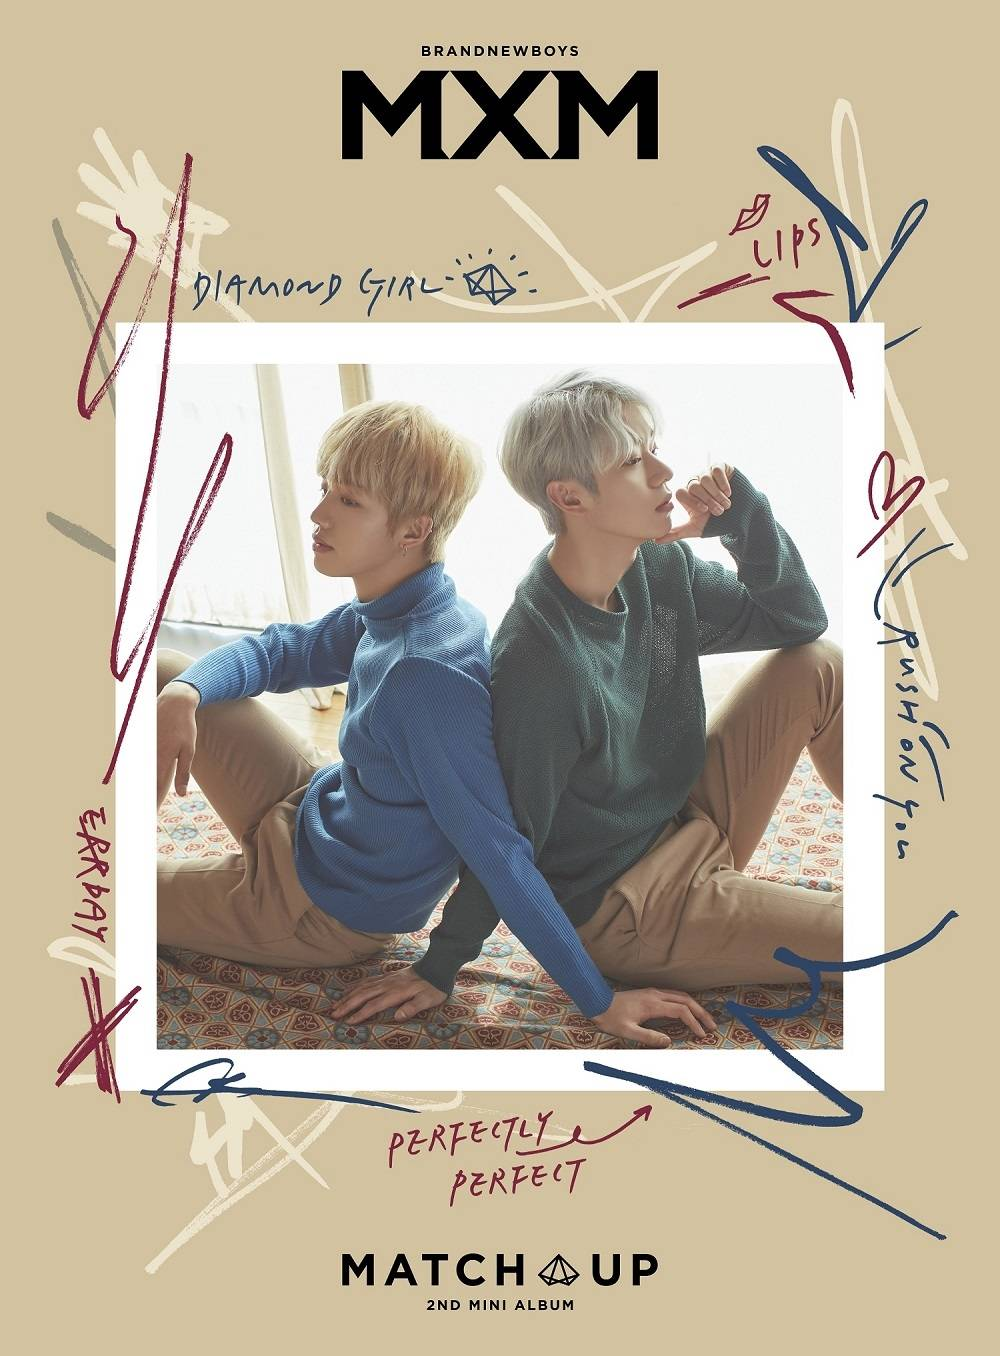 MXM (BRANDNEWBOYS) - 2nd Mini Album: MATCH UP [X ver.] CD